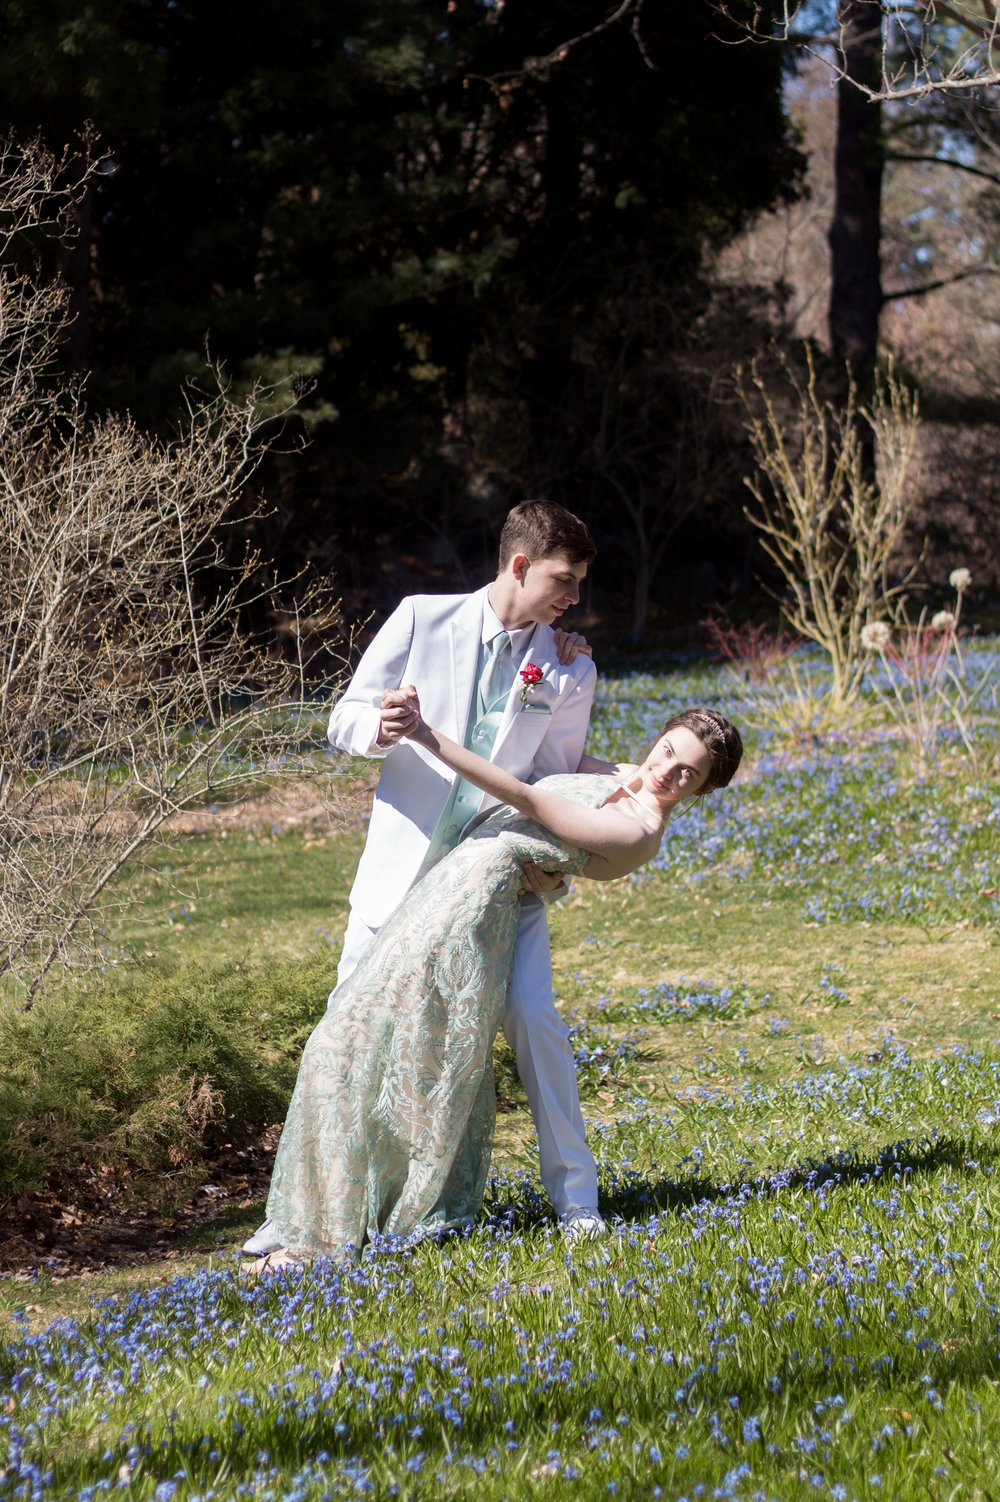 Prom Thomas and Em Thomas (48).jpg